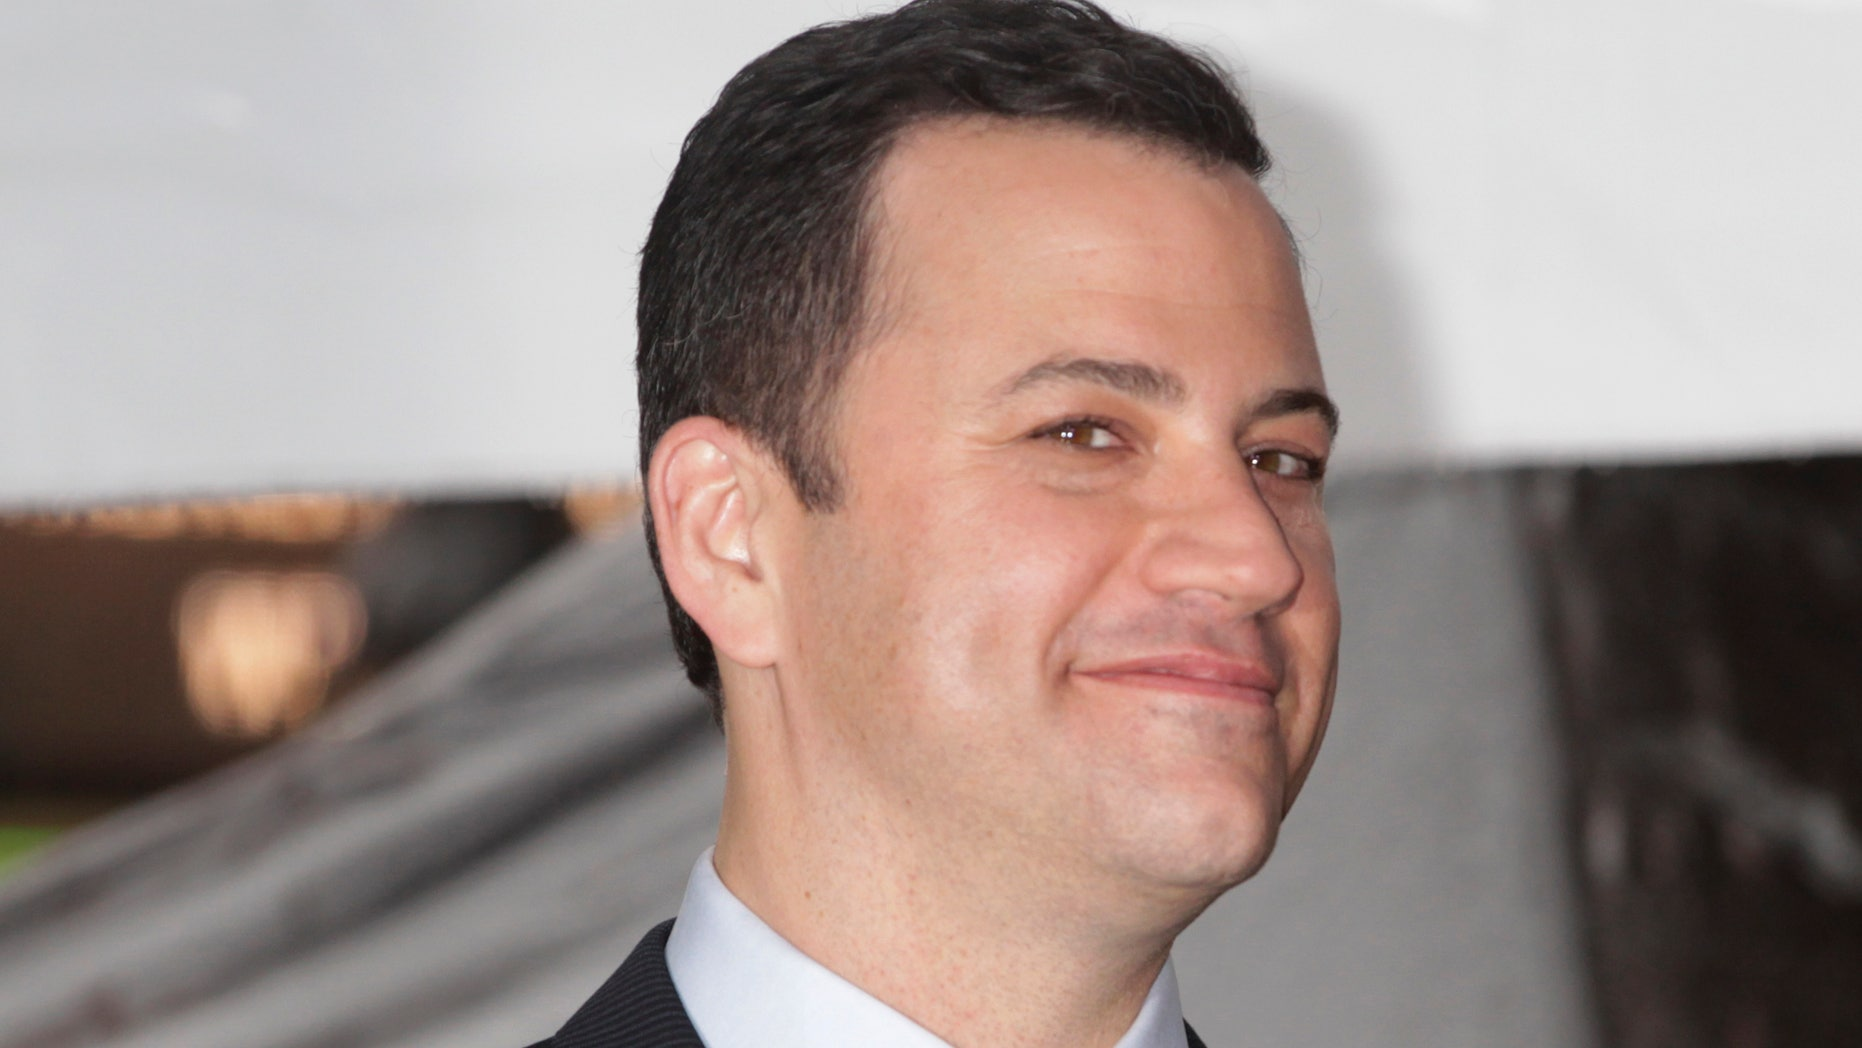 January 25, 2013. Talk show host Jimmy Kimmel smiles during ceremonies unveiling his star on the Hollywood Walk of Fame in Hollywood.